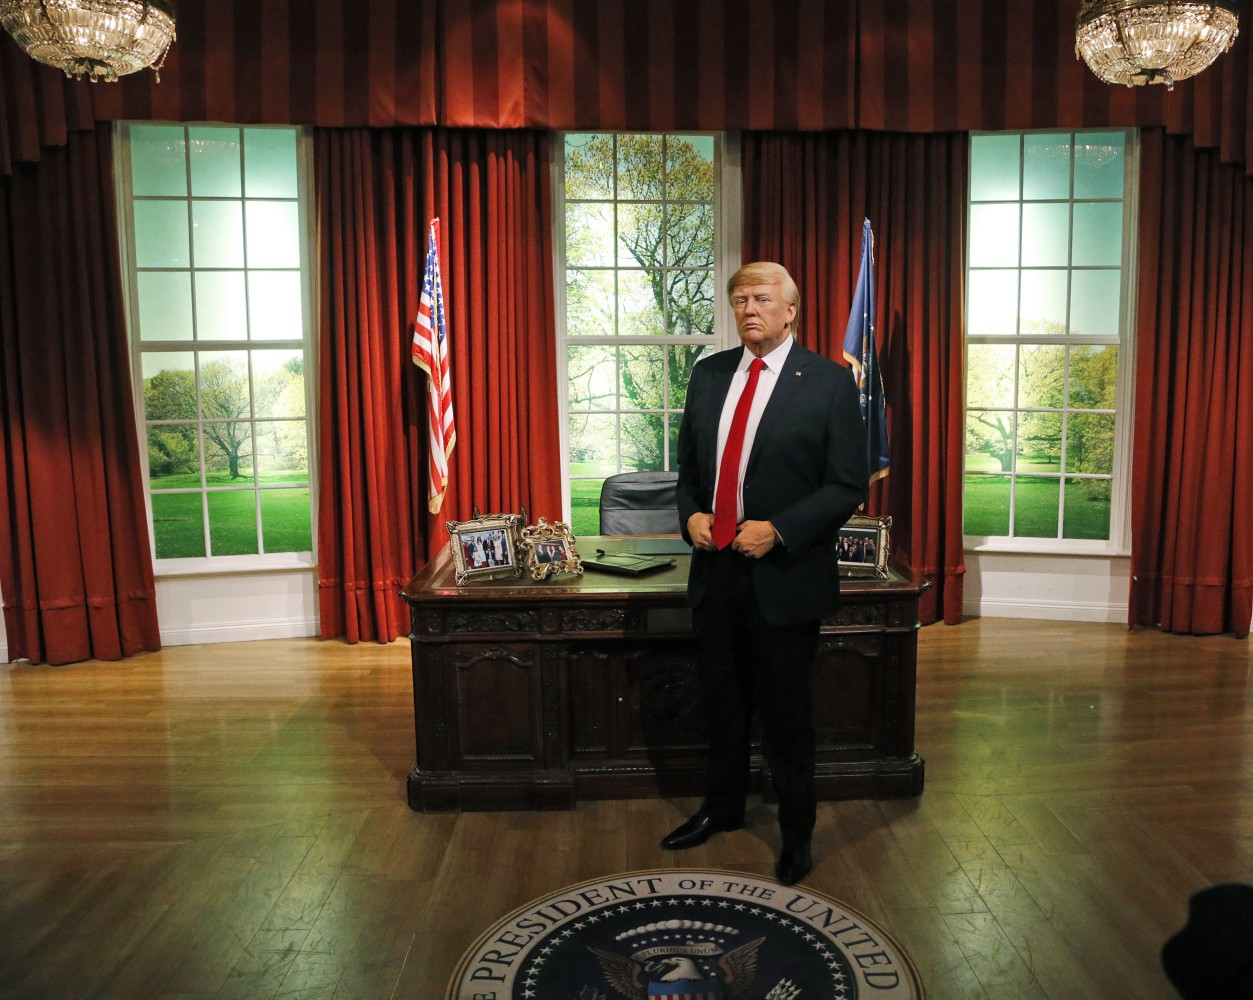 Wax Figure of Donald Trump Unveiled at Madame Tussauds in DC